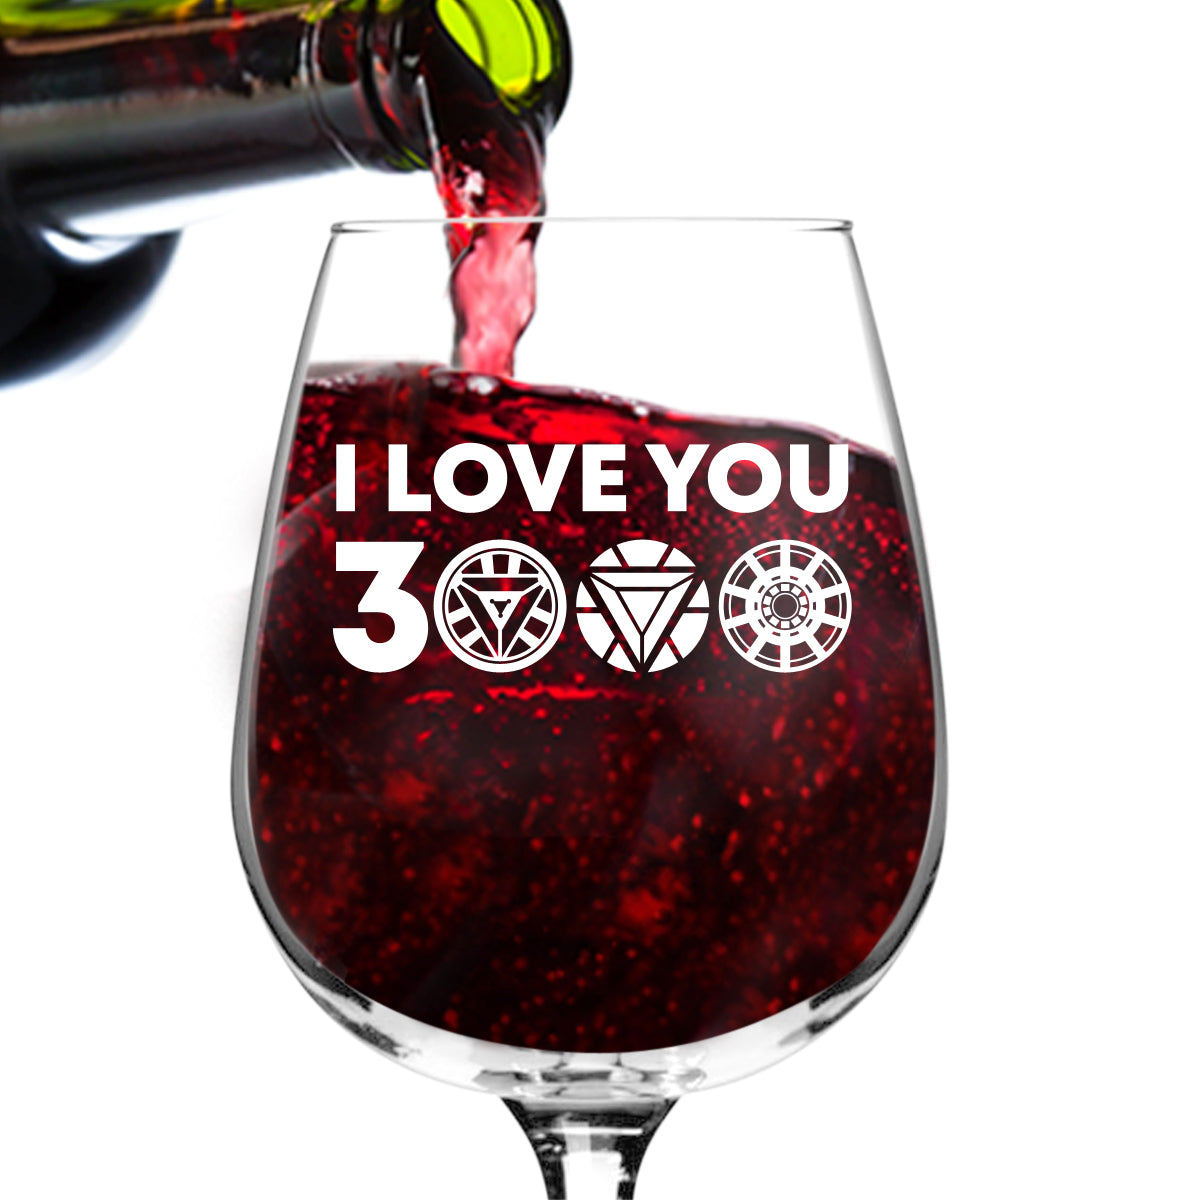 I Love You 3000 Funny Wine Glass (12.75 oz) | Birthday Present for Mom| Best Mom Ever Glass for Mom, Step Mom, New Mom or Grandma | Mommy Gifts From Daughter, Son | Mother's Day Gift for Women